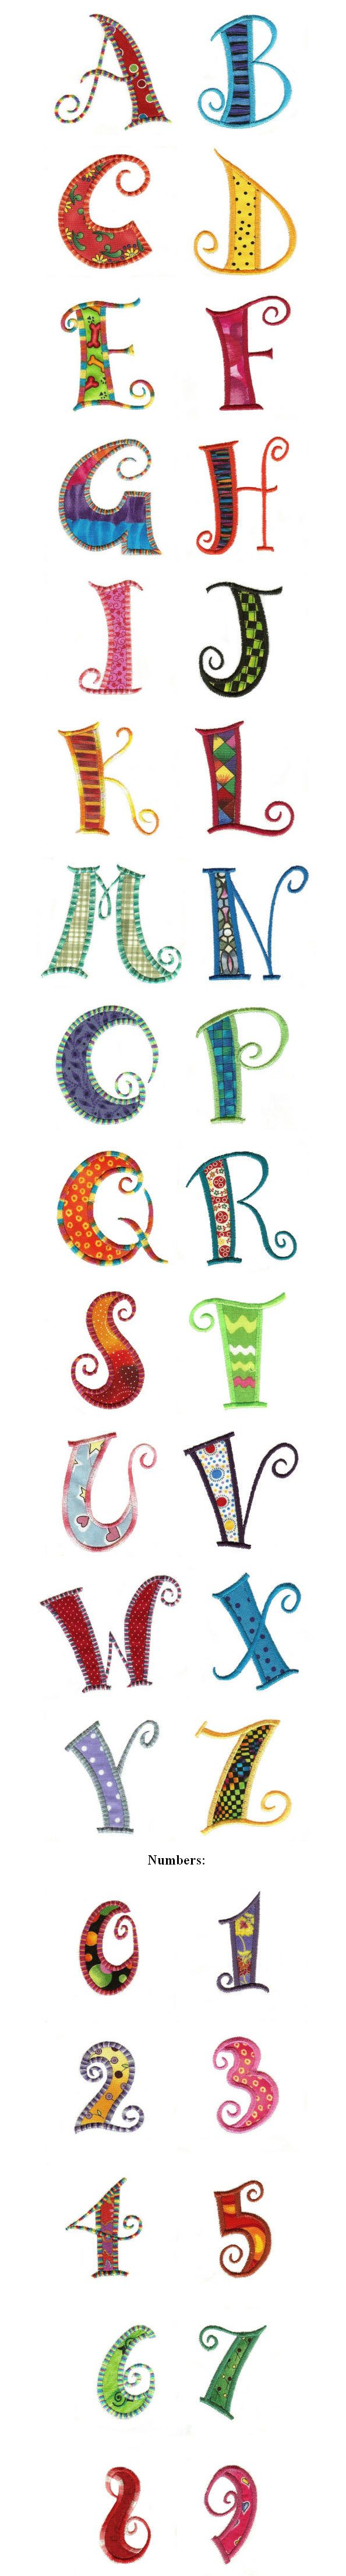 Embroidery | Free Machine Embroidery Designs| Curly Q Applique Alphabet